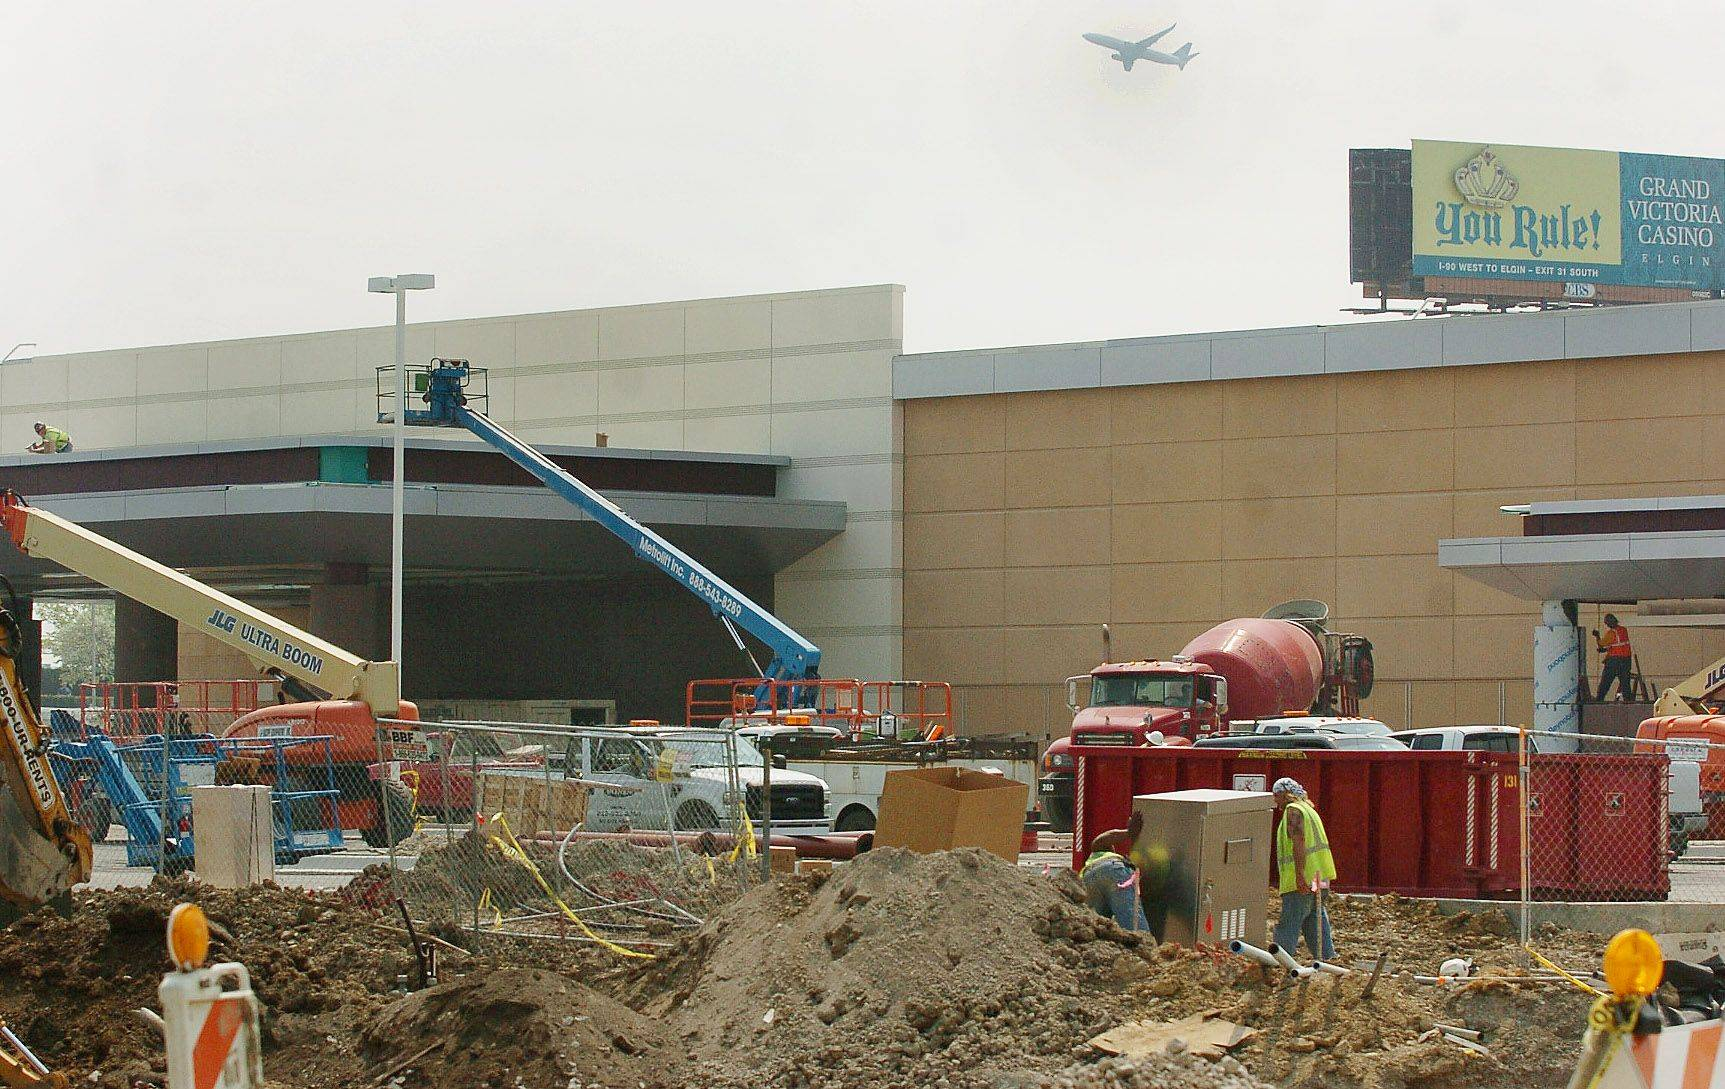 Bob Chwedyk/bchwedyk@dailyherald.com Construction of Des Plaines casino.